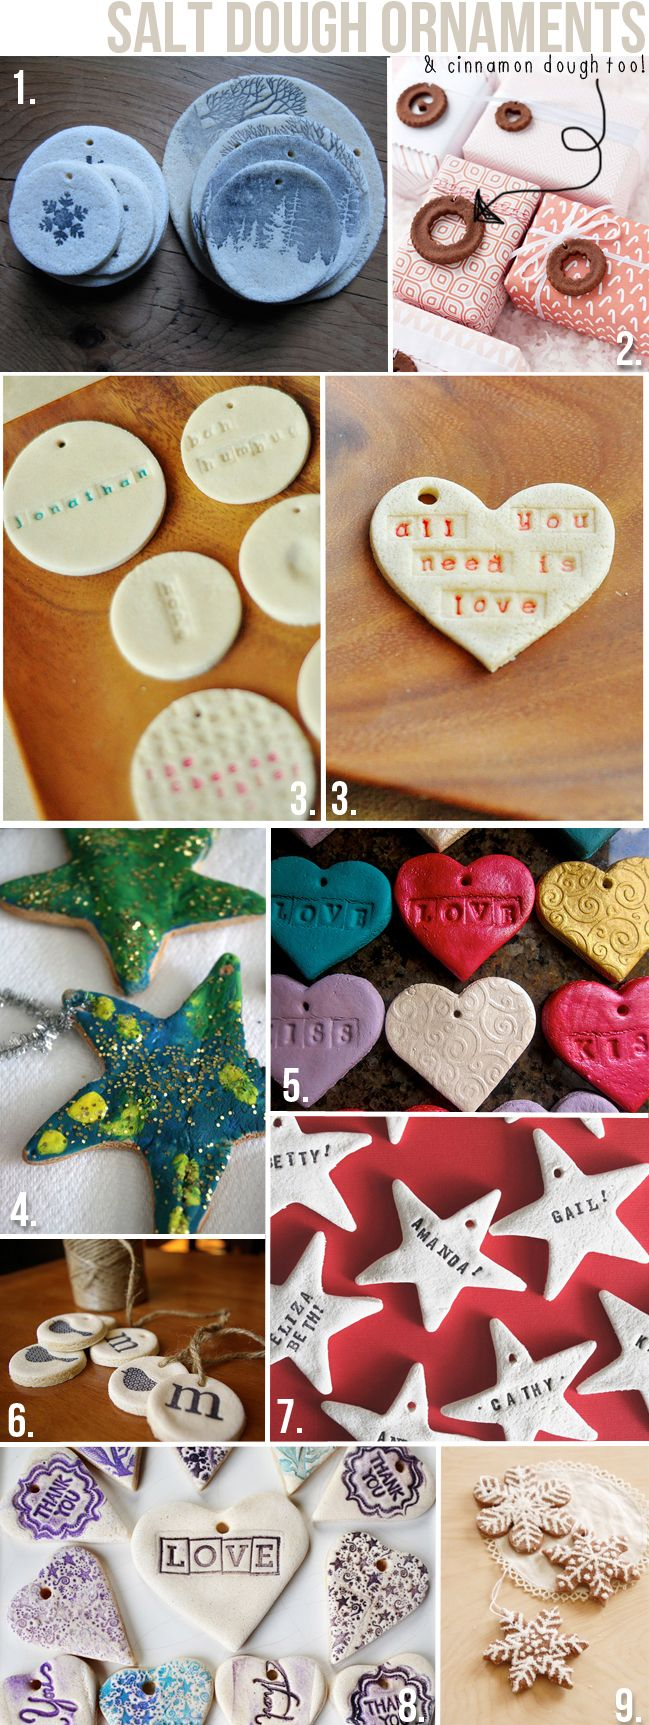 Easy to follow and lots of ideas for different holidays IROCKSOWHAT: Salt Dough Ornaments